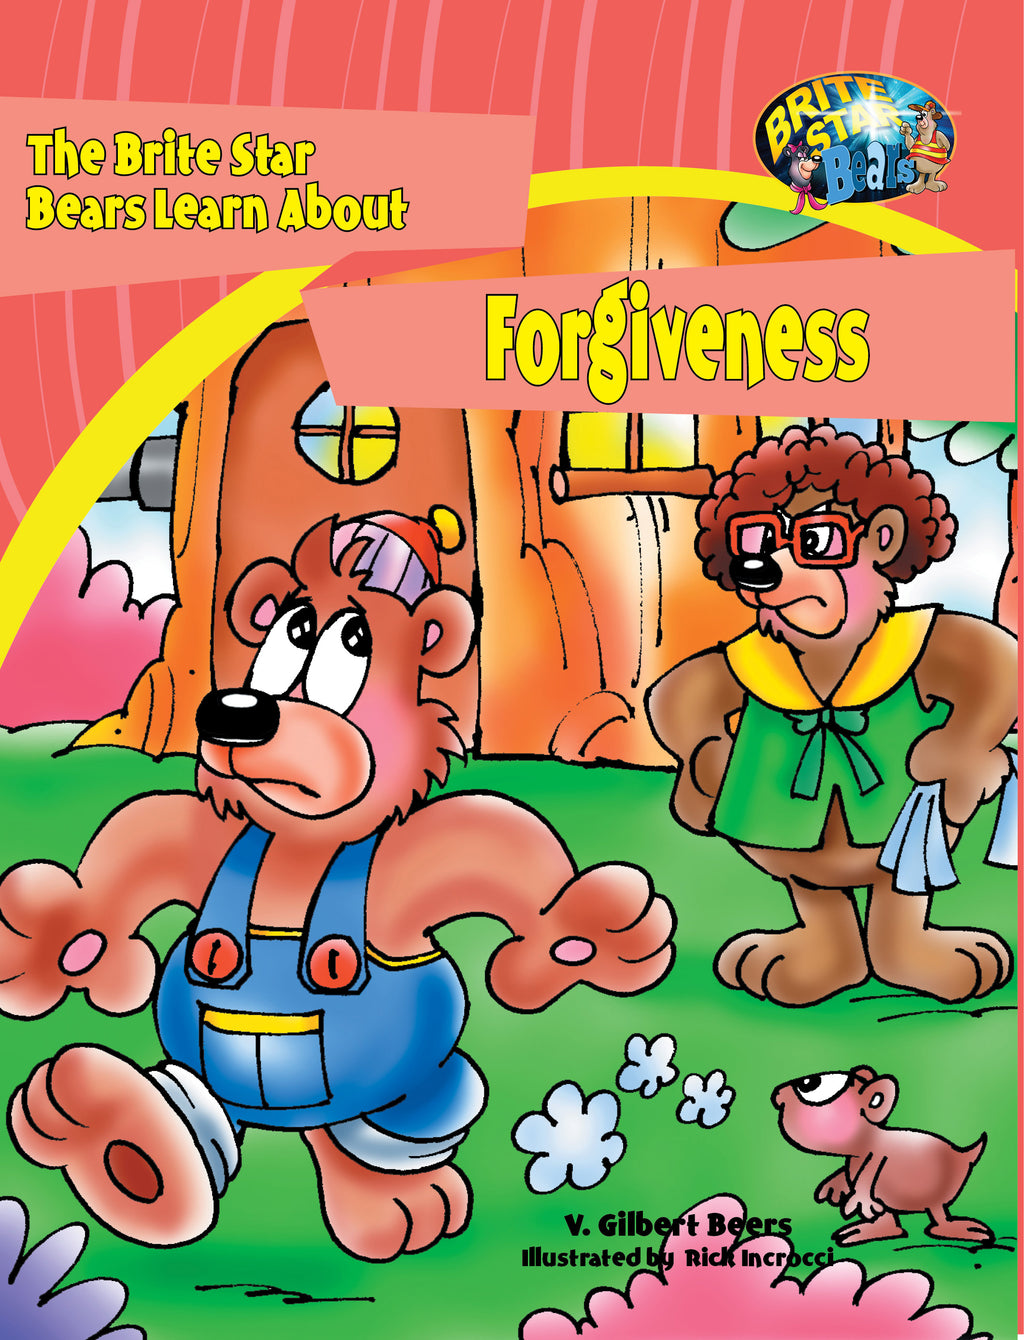 The Bears of Brite Star Learn About Forgiveness